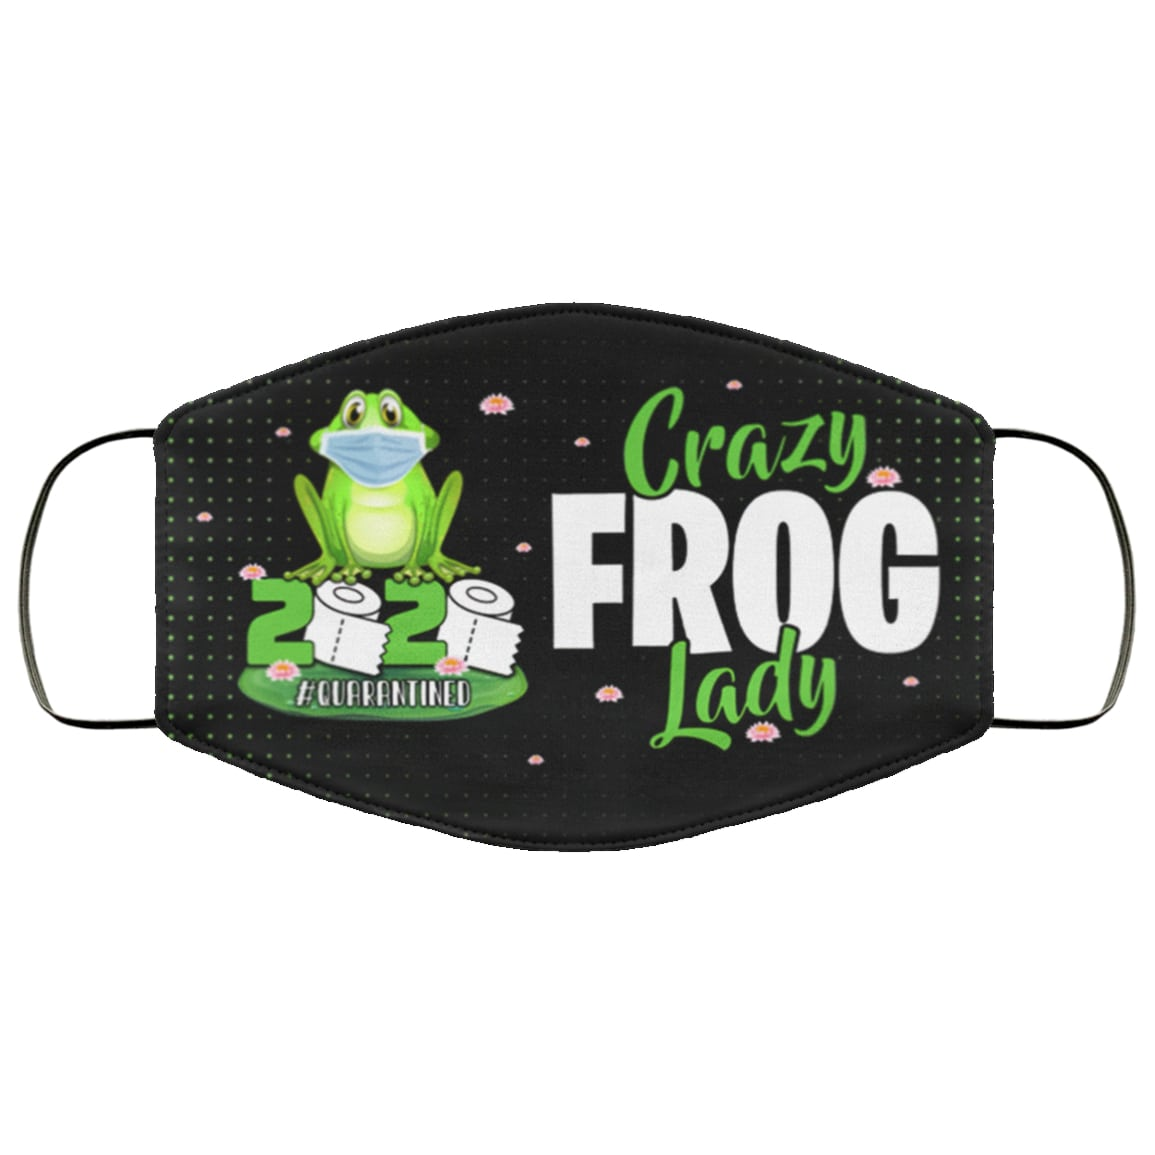 Crazy frog lady 2020 quarantined anti pollution face mask 1